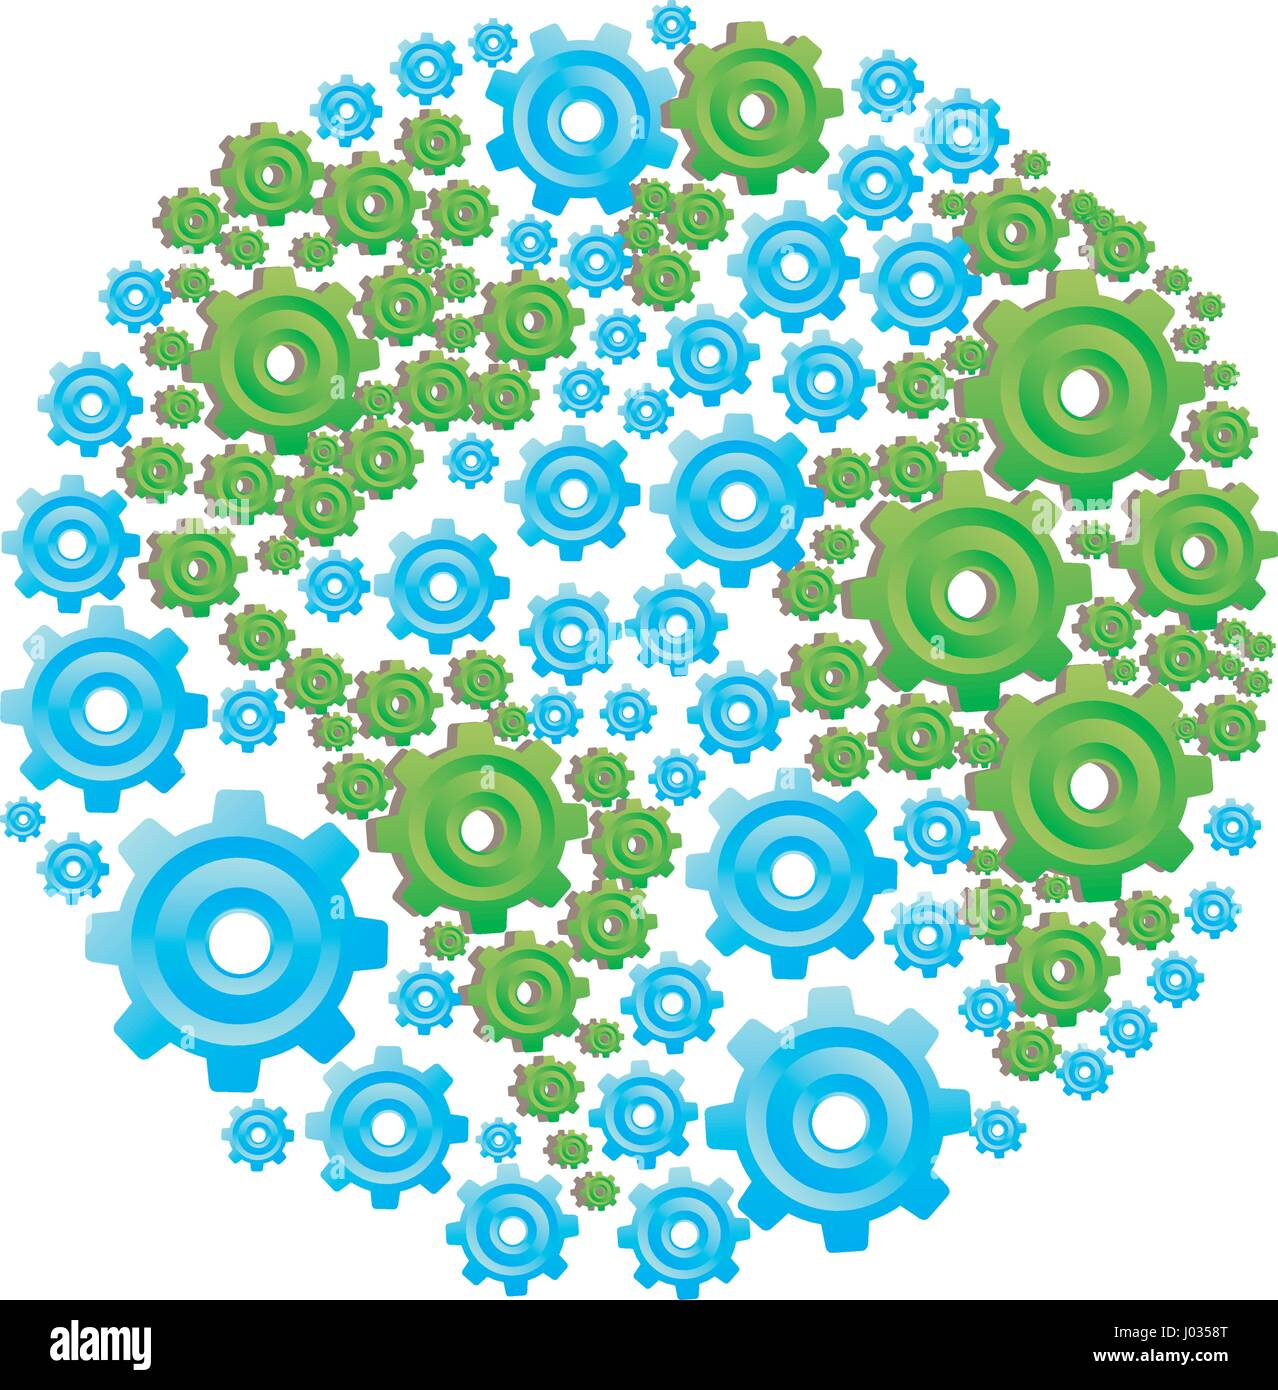 colorful circular shape with pattern of pinions Stock Vector